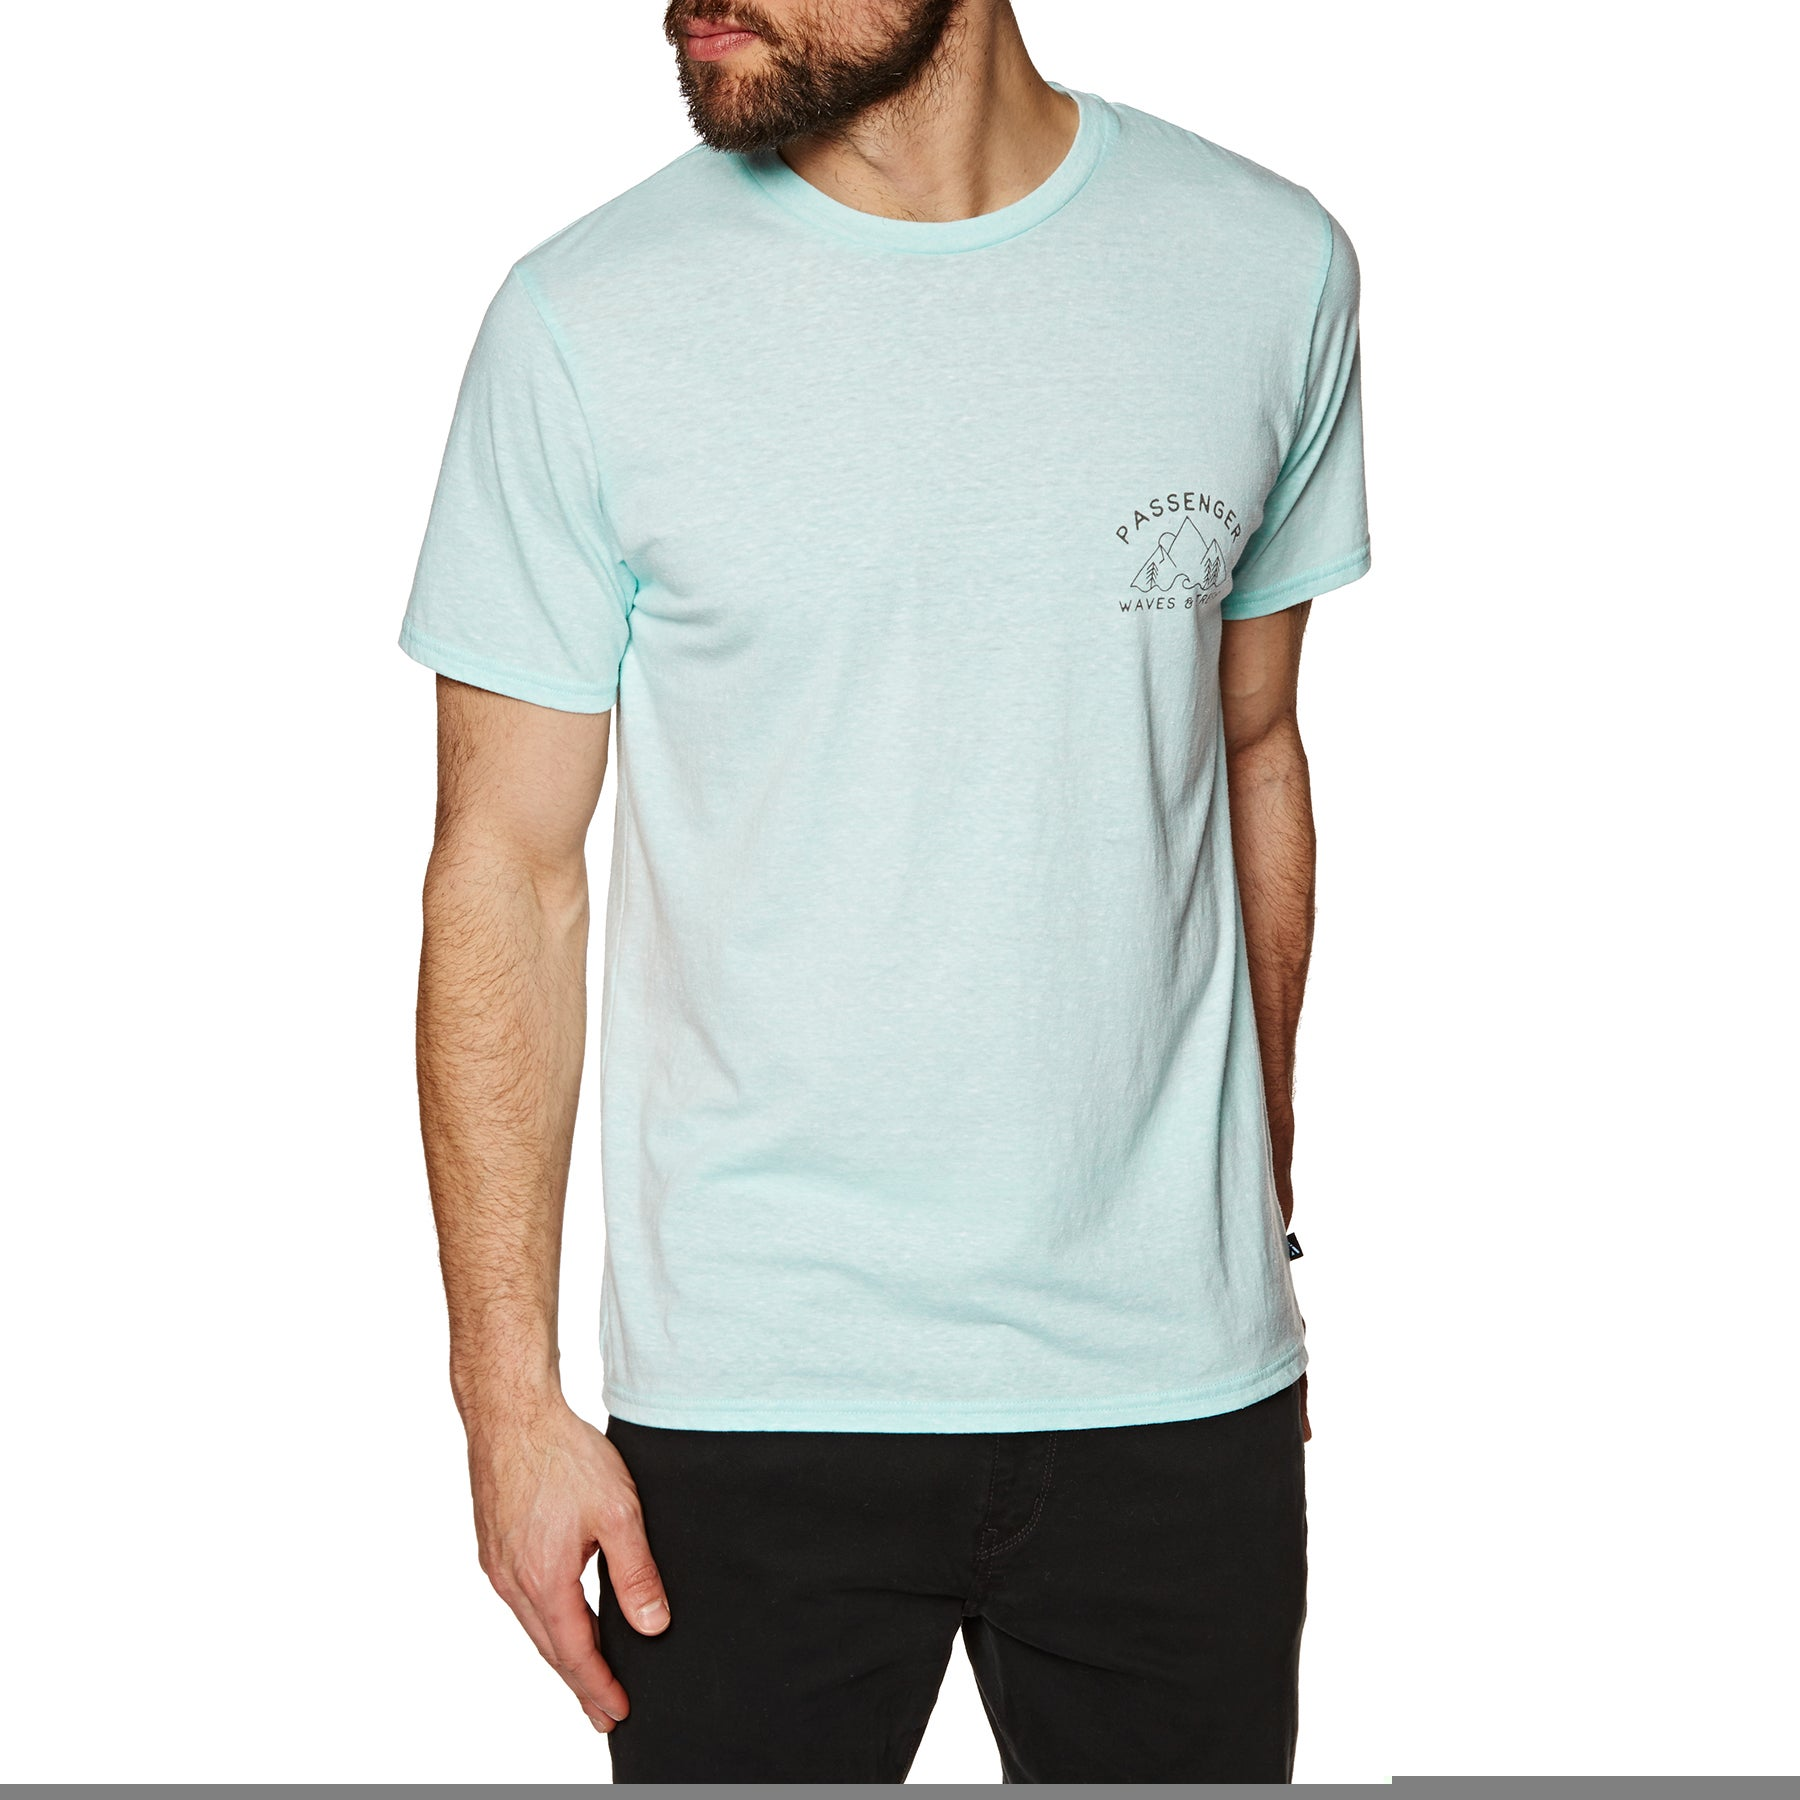 Passenger Clothing Lagoon Short Sleeve T-Shirt